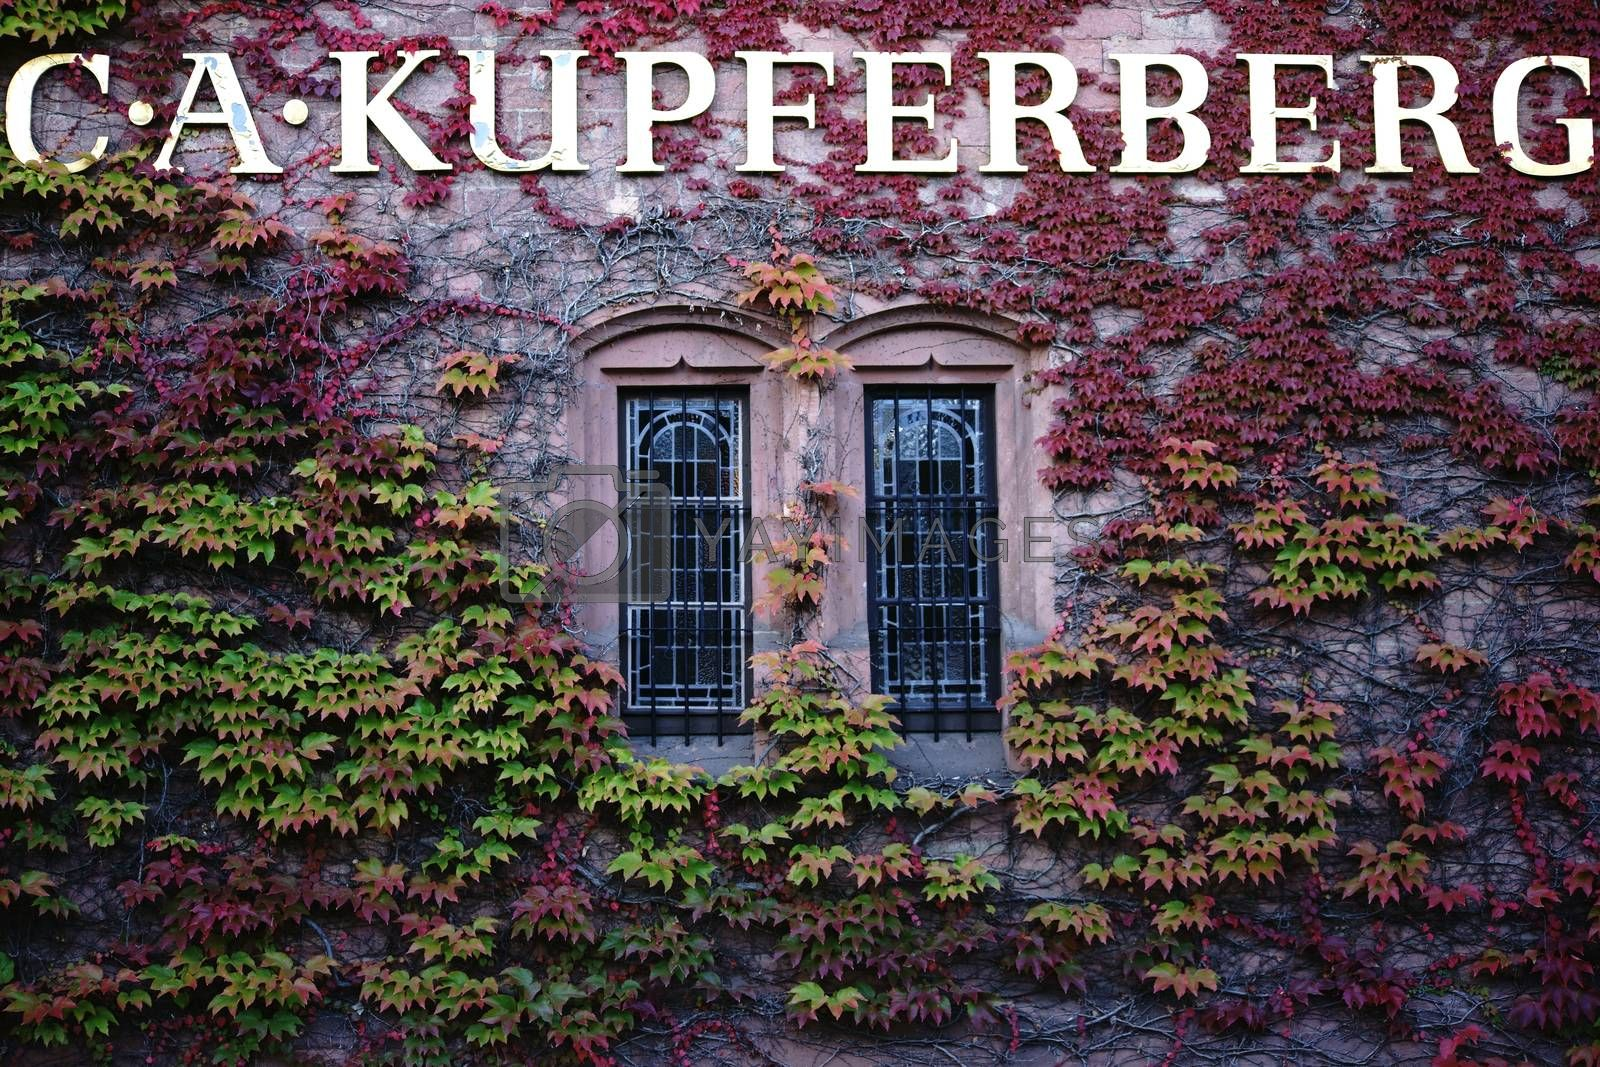 Mainz, Germany - September 19, 2015: The vine-covered facade of the headquarters of the company C.A. Kupferberg on September 19, 2015 in Mainz.